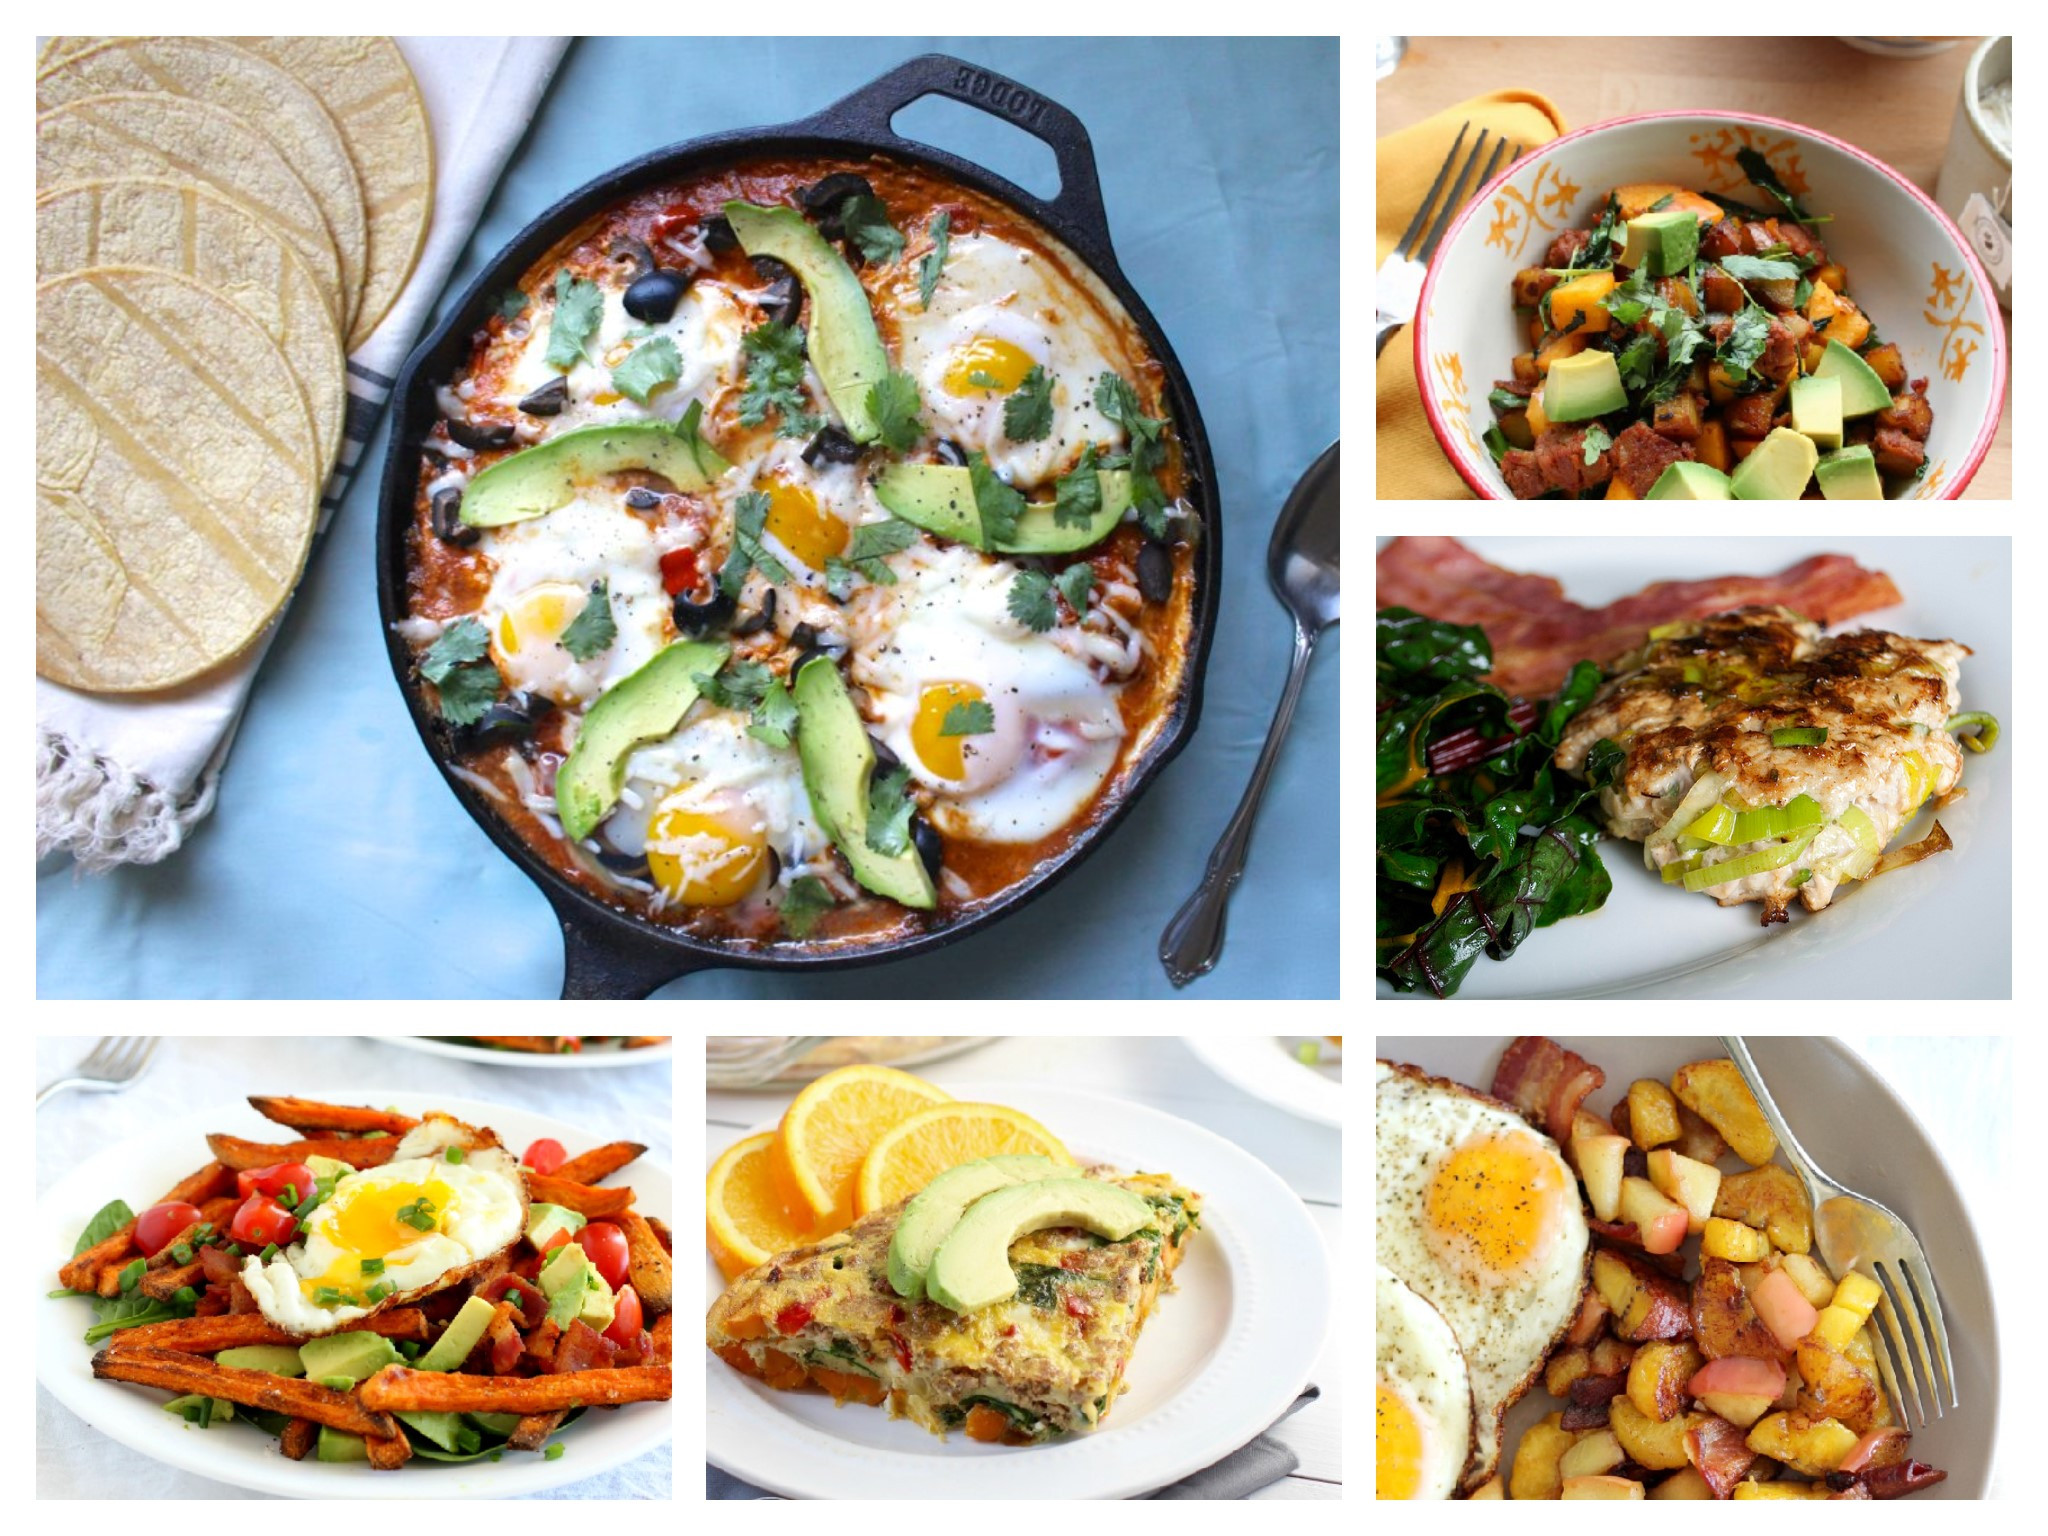 Breakfast Food Recipes  50 Scrumptious Whole30 Breakfast Recipes Oh Snap Let s